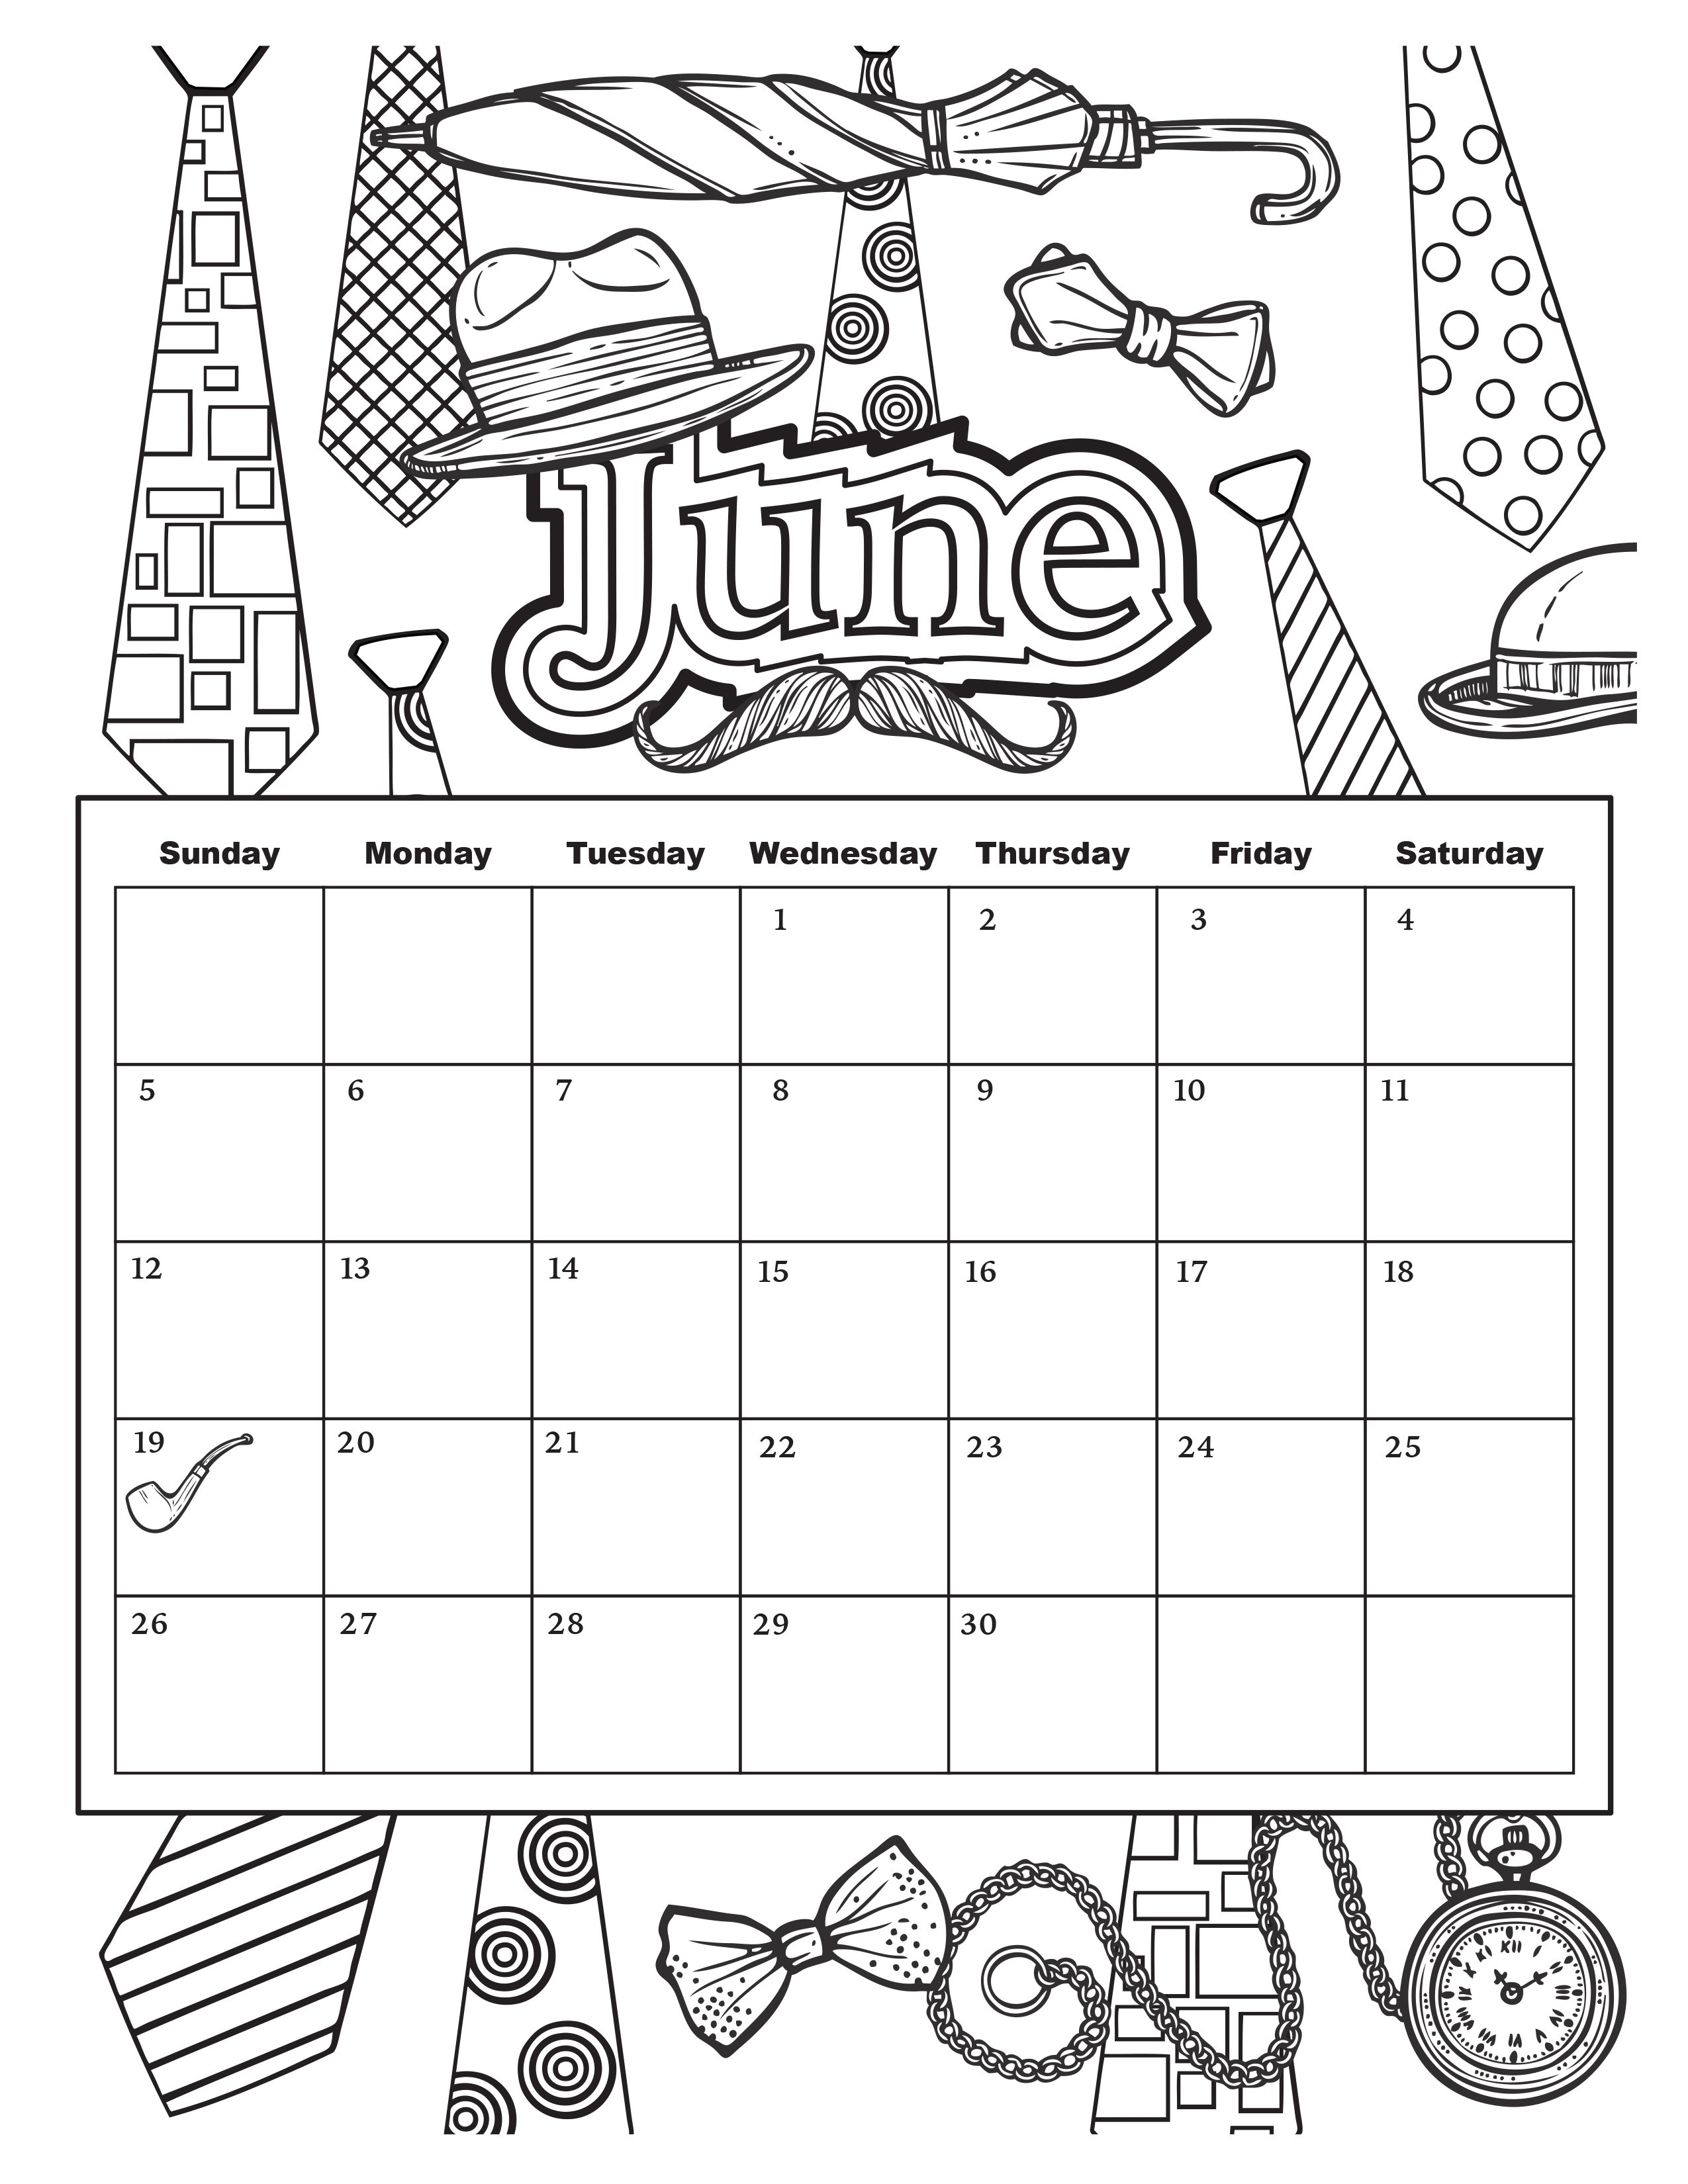 Free Download: Coloring Pages From Popular Adult Coloring Books with Coloring Pages October Calendar 2019 Adults